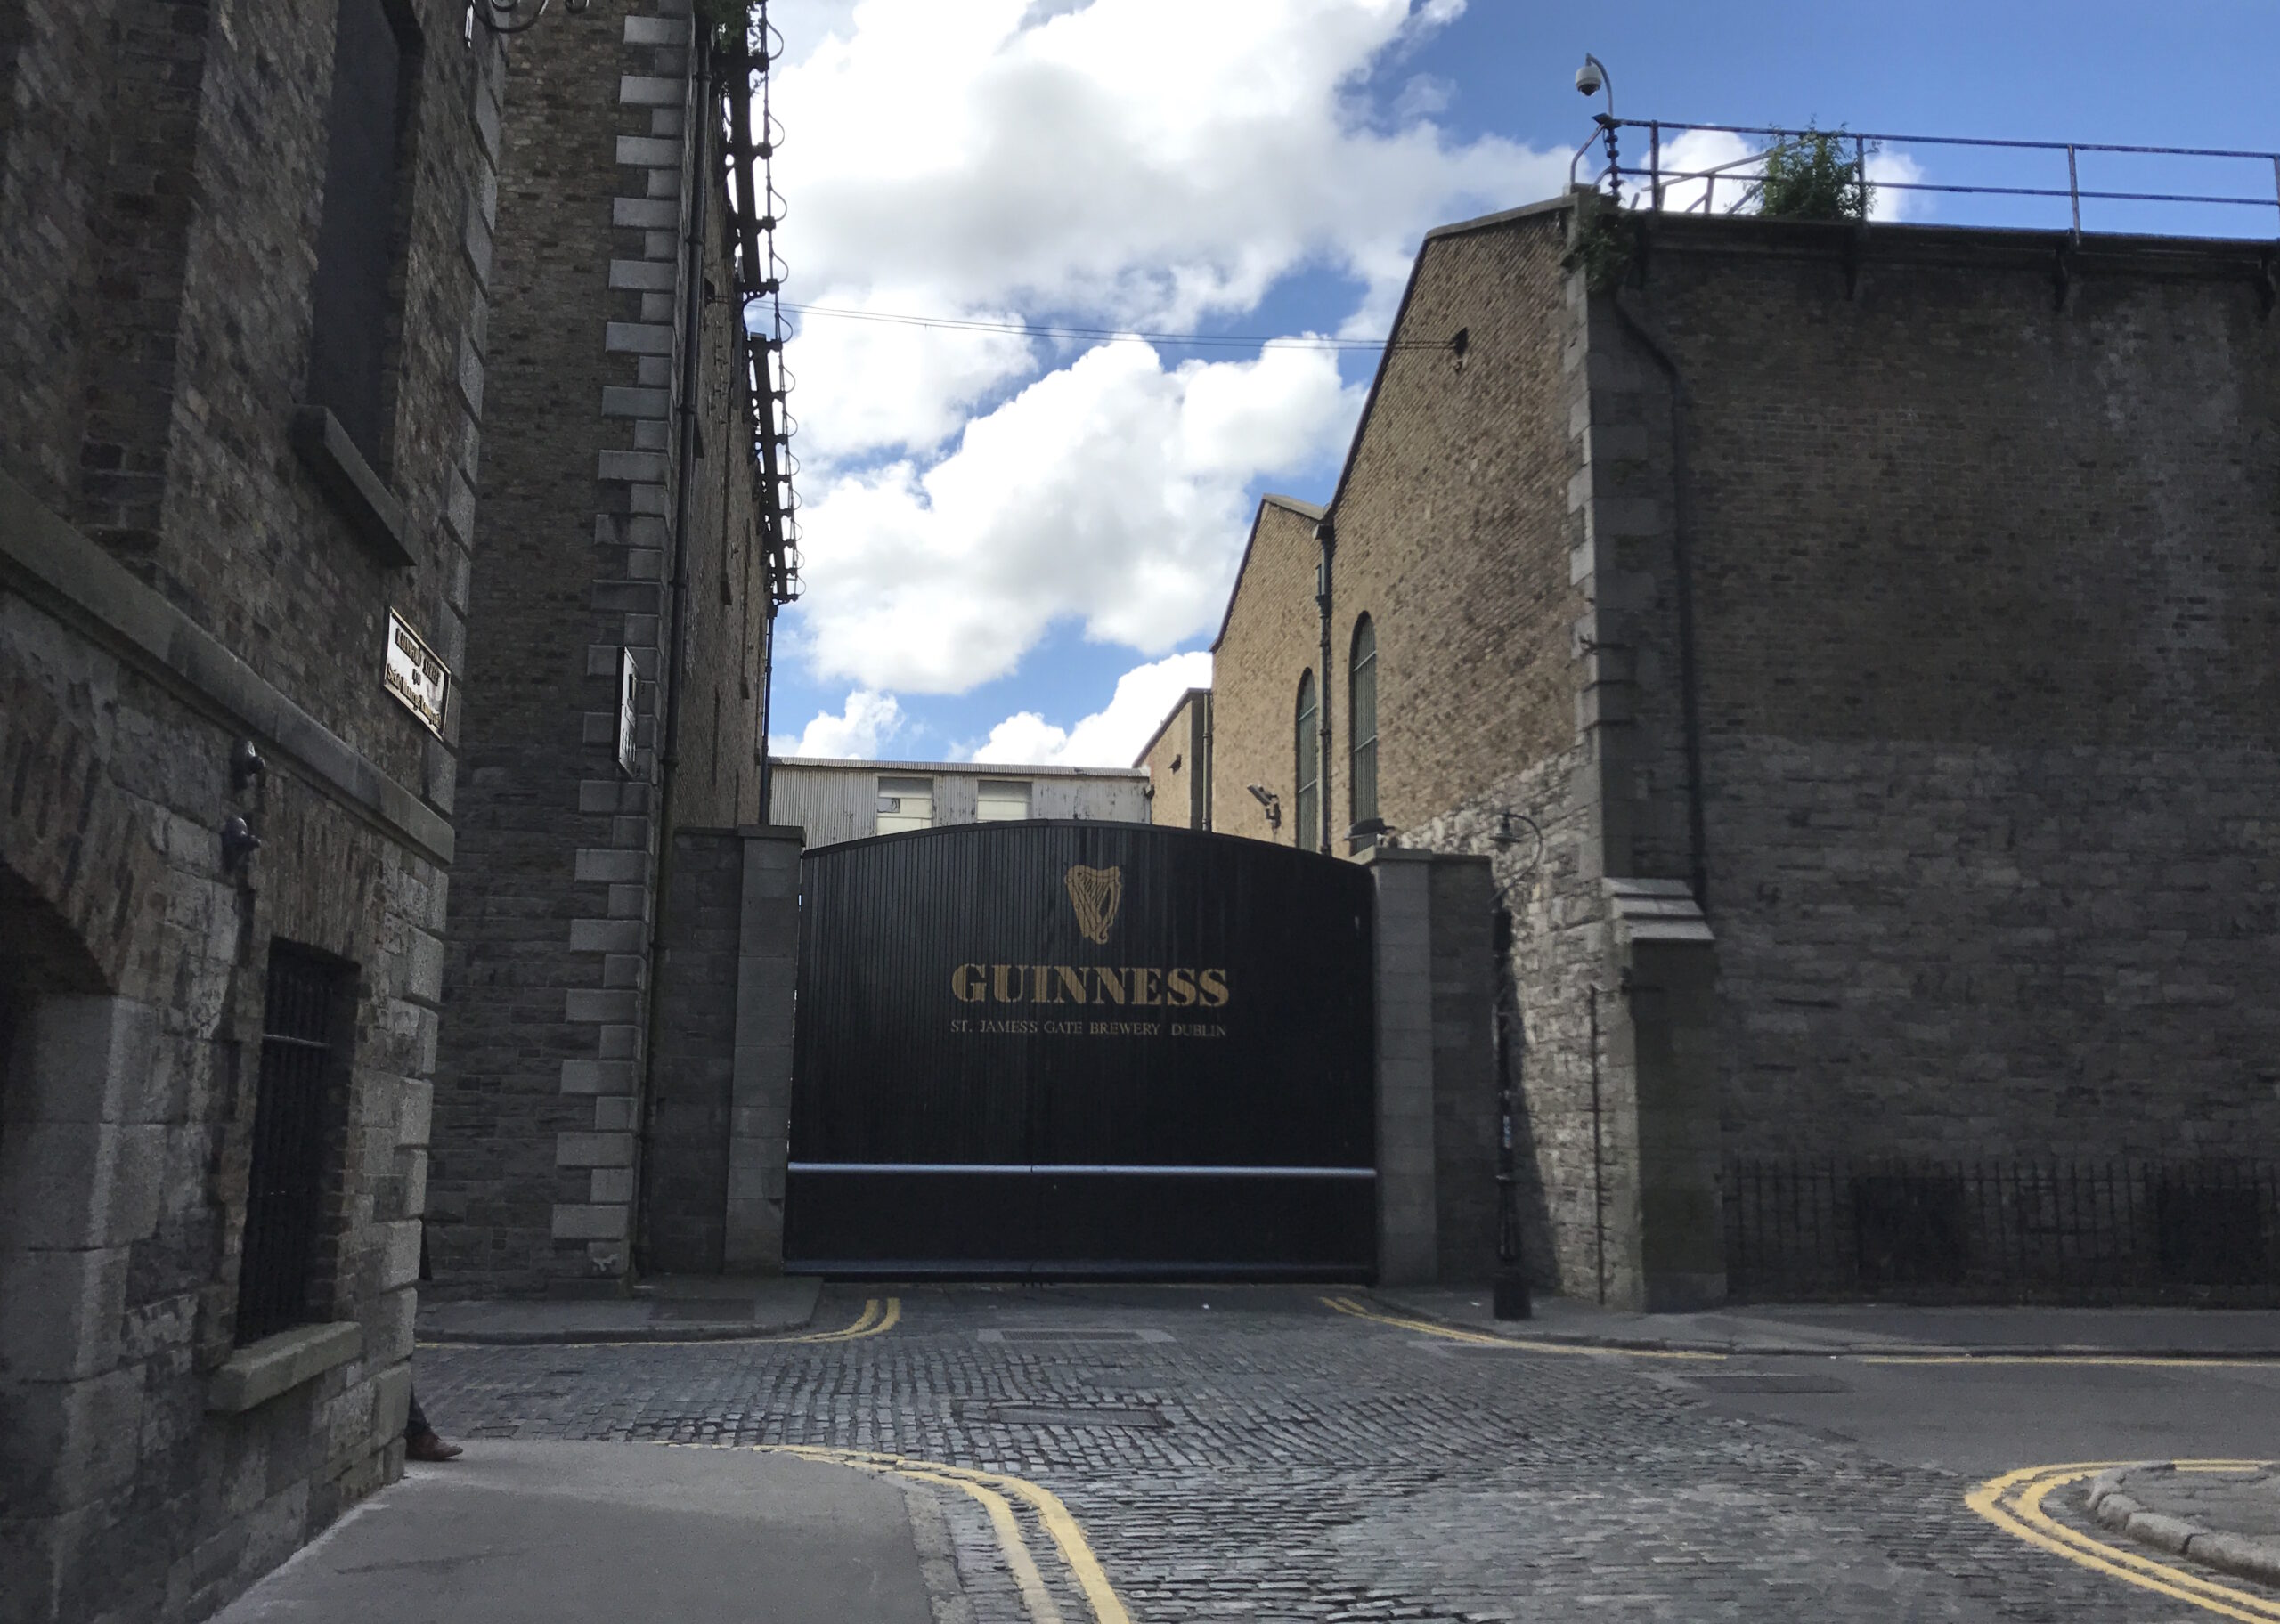 We Visited the Guinness Storehouse in Dublin, Ireland. Here's Why You Should Too